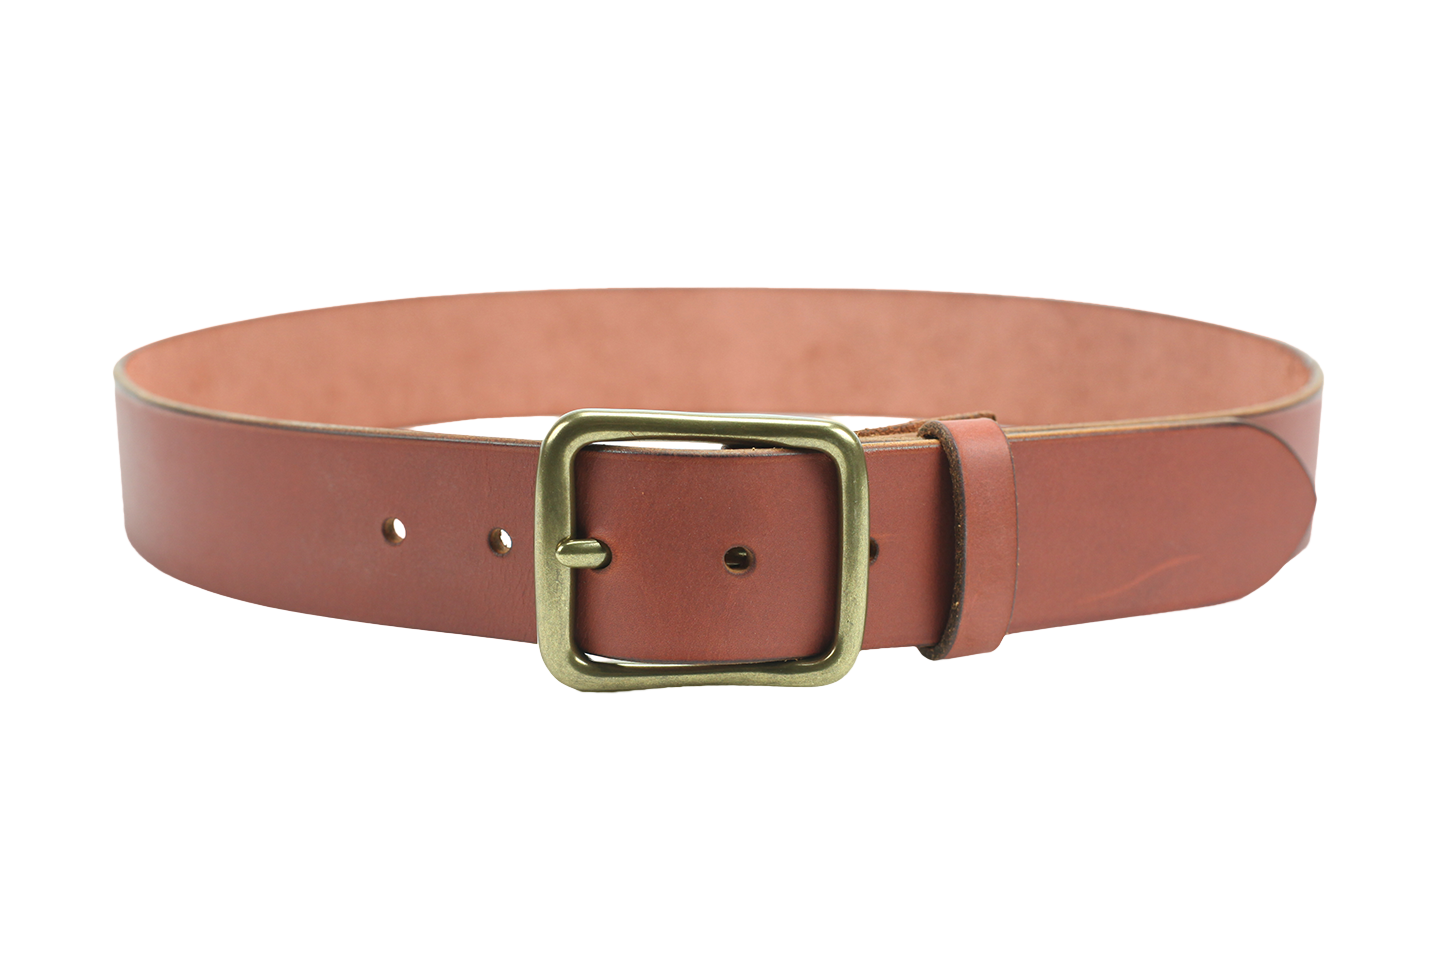 Transparent belt. Belts png images pluspng